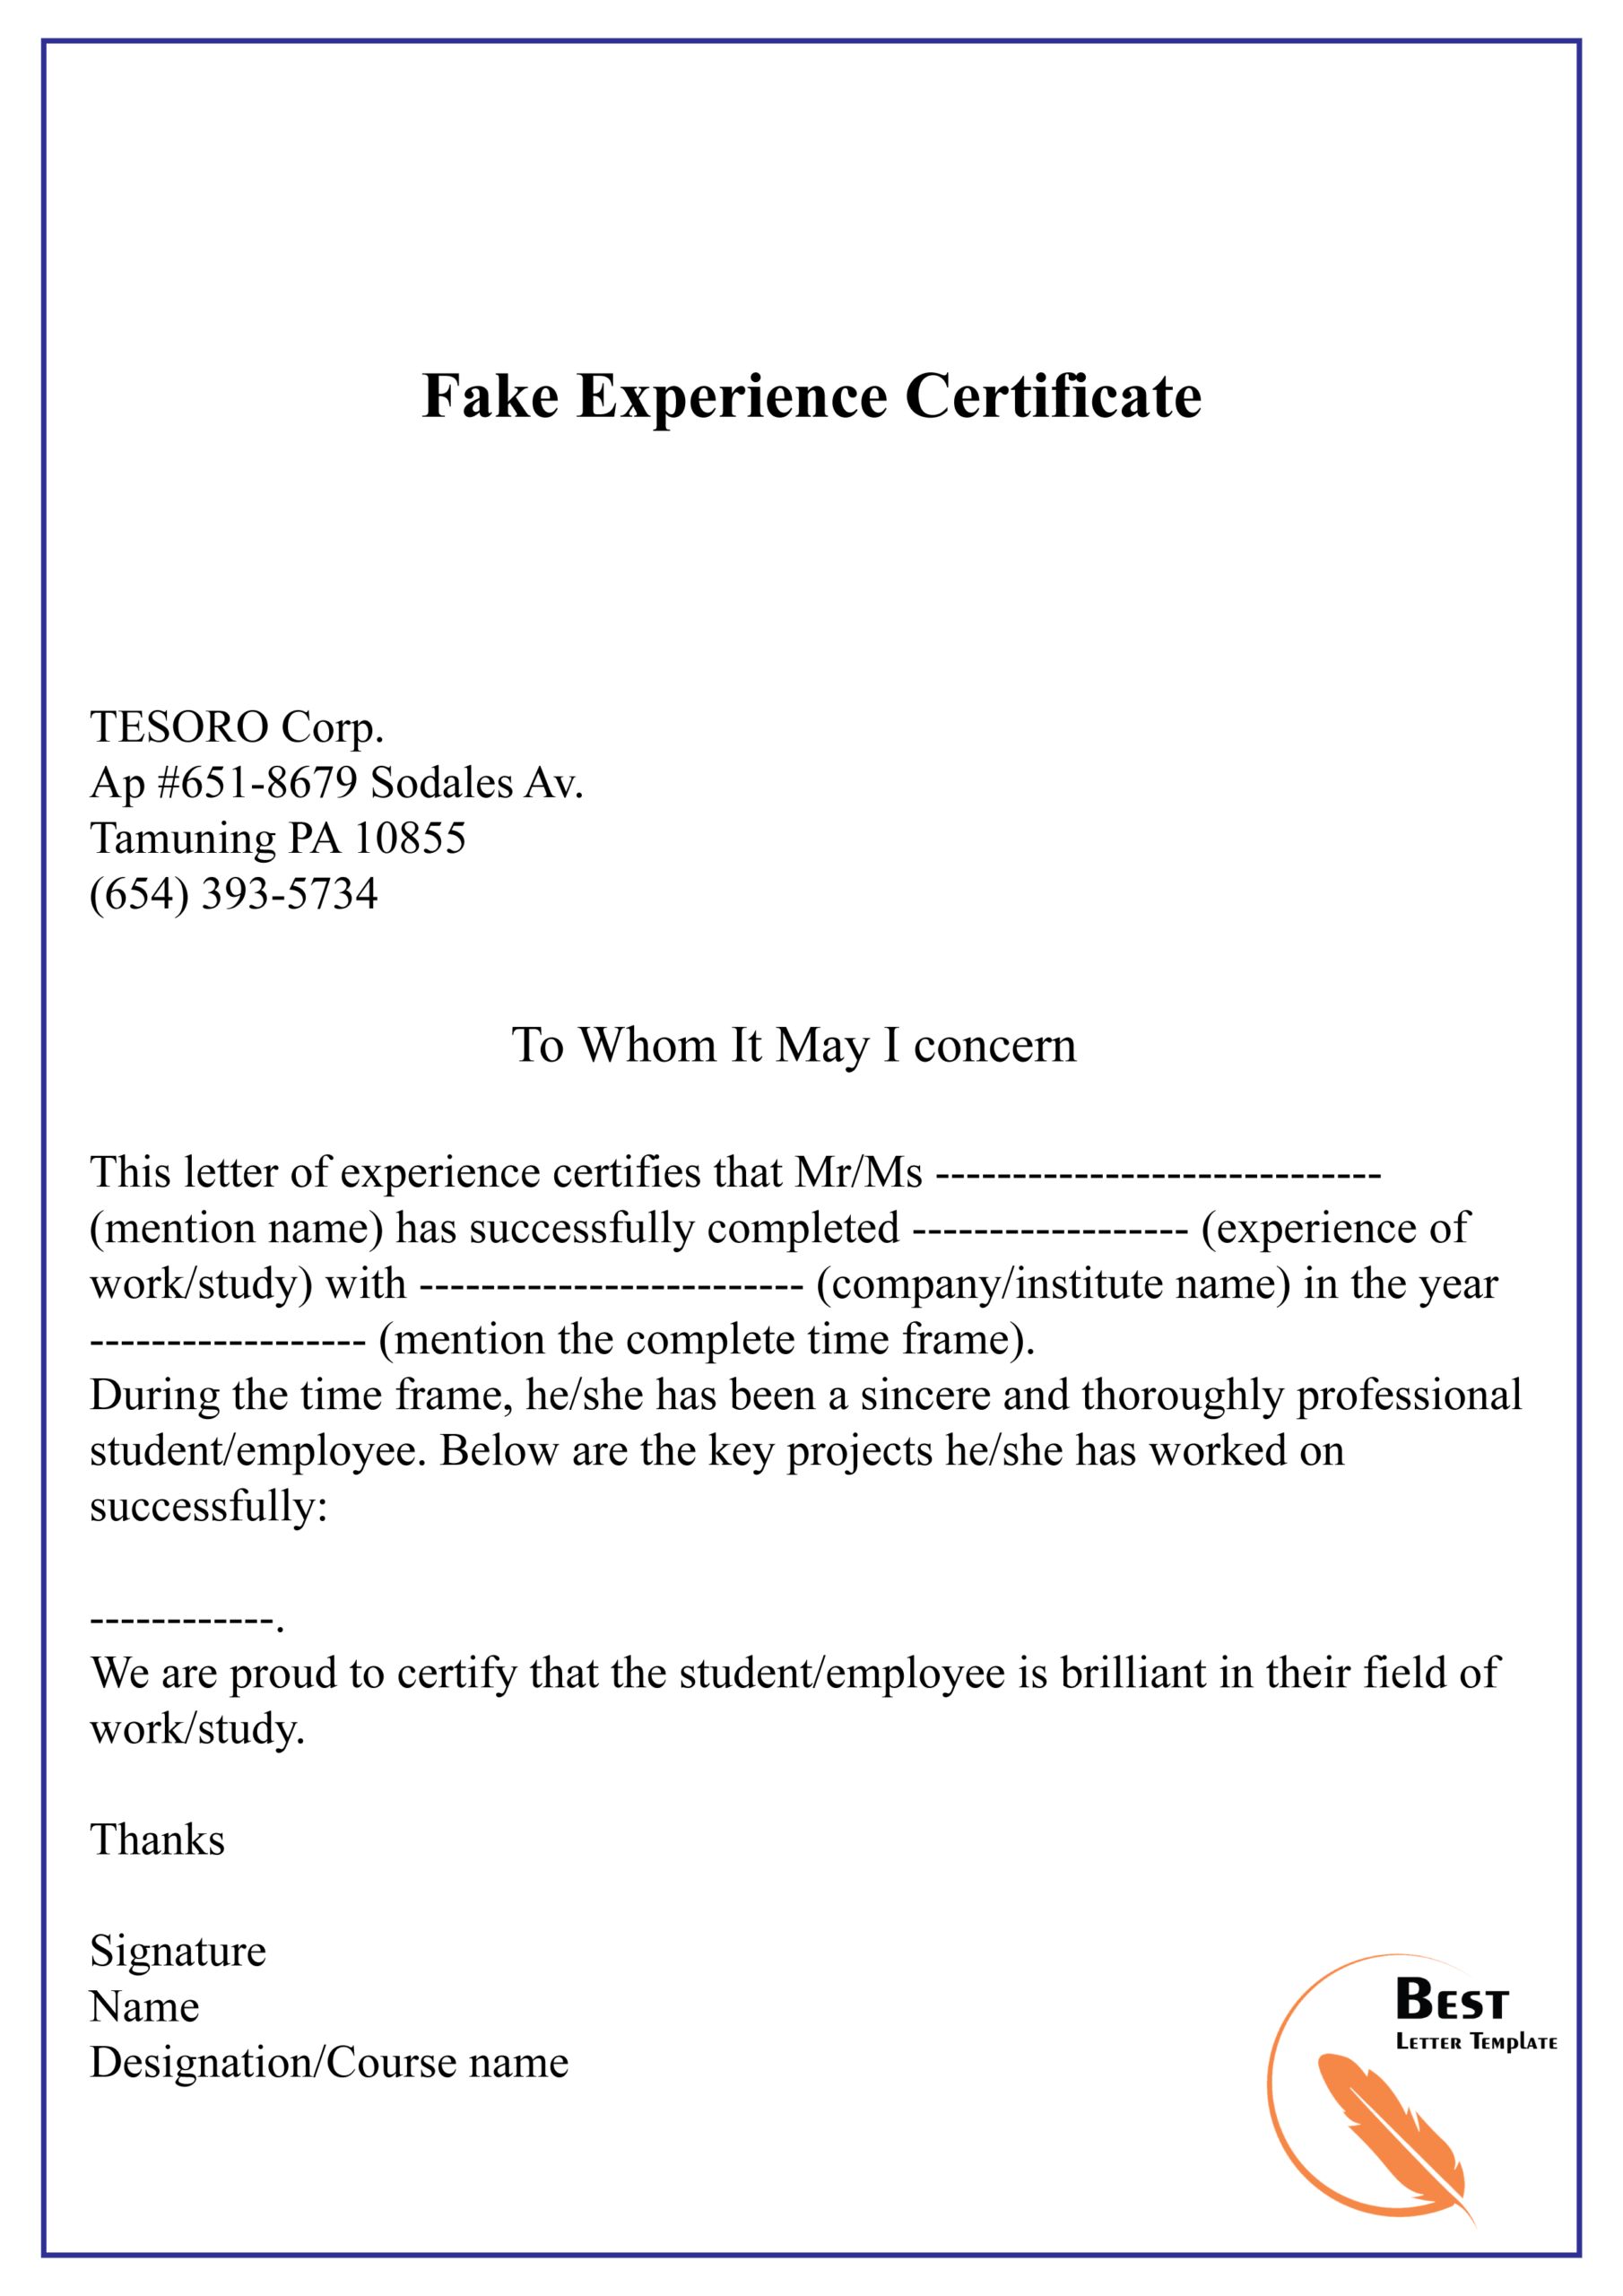 Fake Experience Certificate 01 | Best Letter Template Inside Certificate Of Experience Template